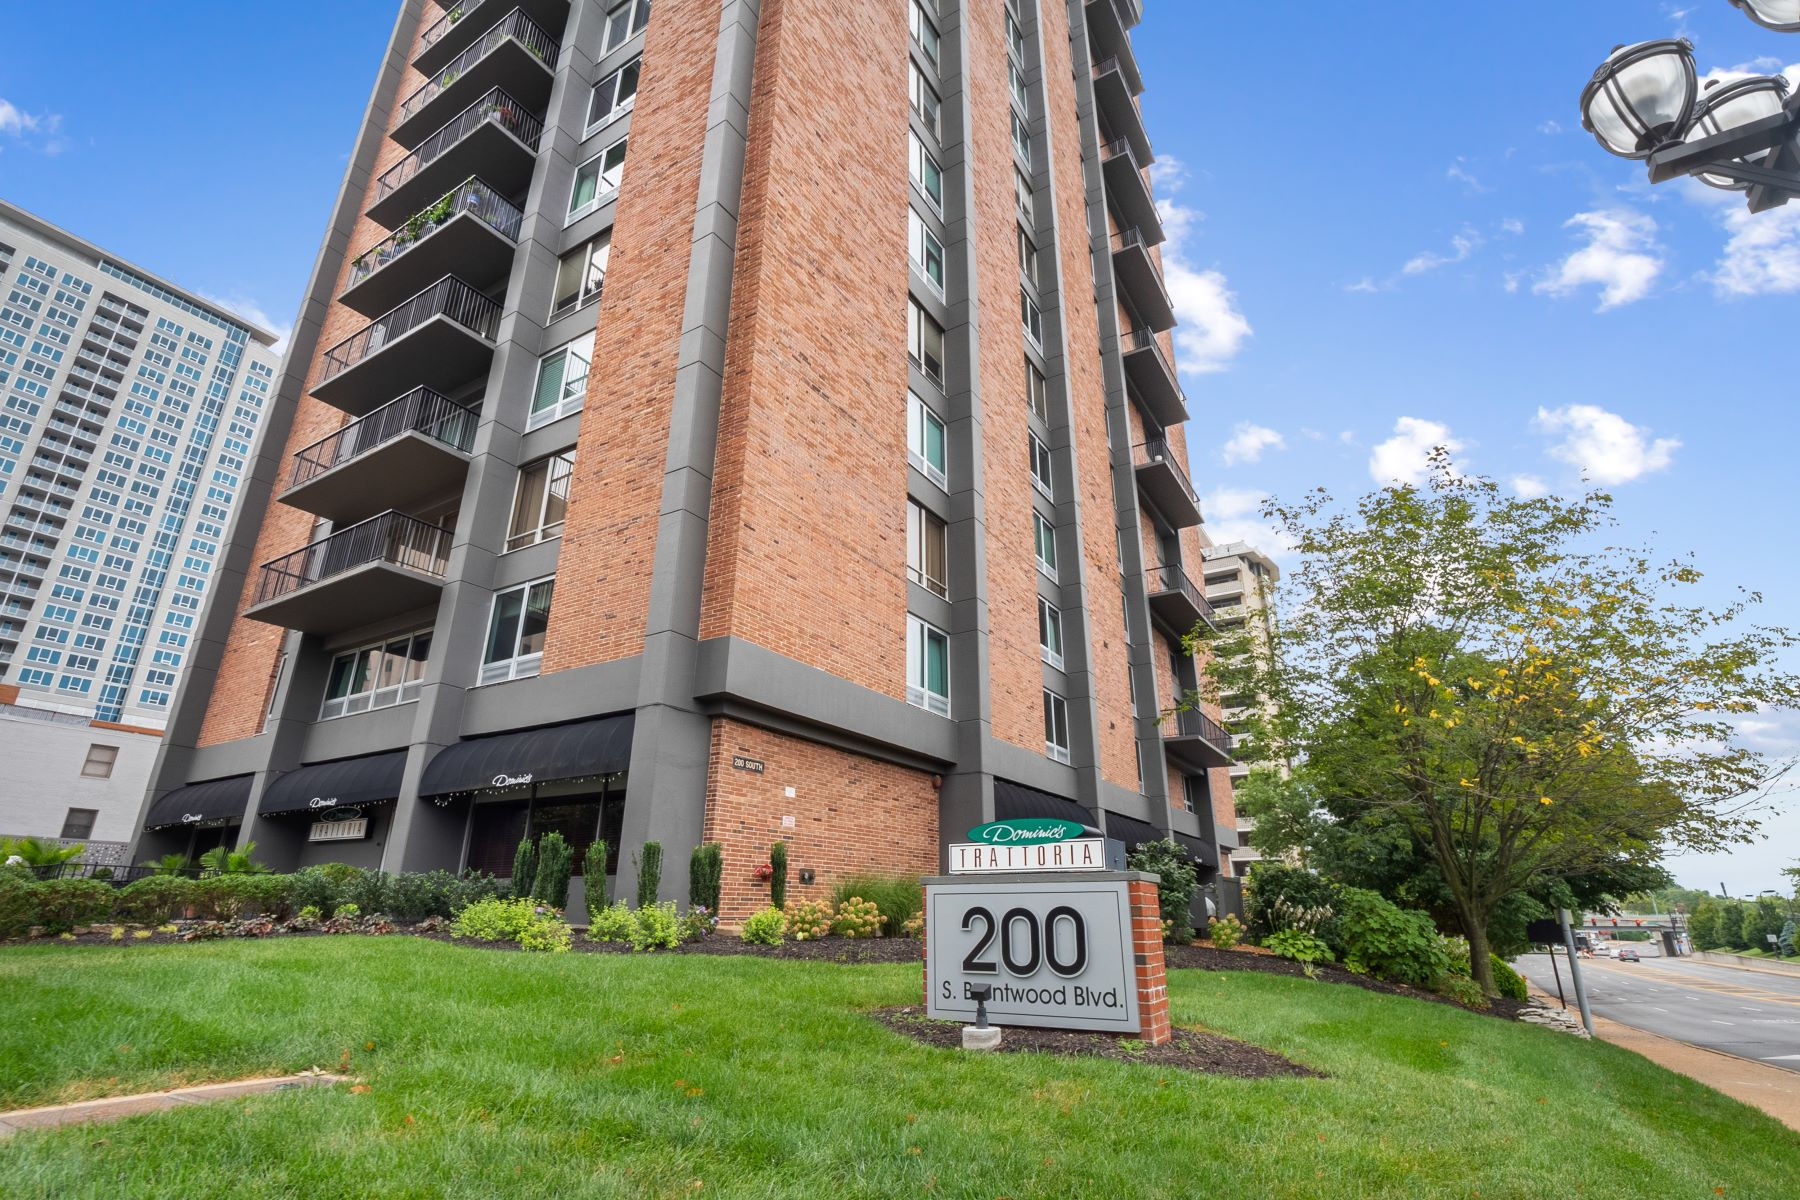 Condominiums for Sale at City Pied-A-Tierre Condo 200 South Brentwood Boulevard, Unit 2B Clayton, Missouri 63105 United States